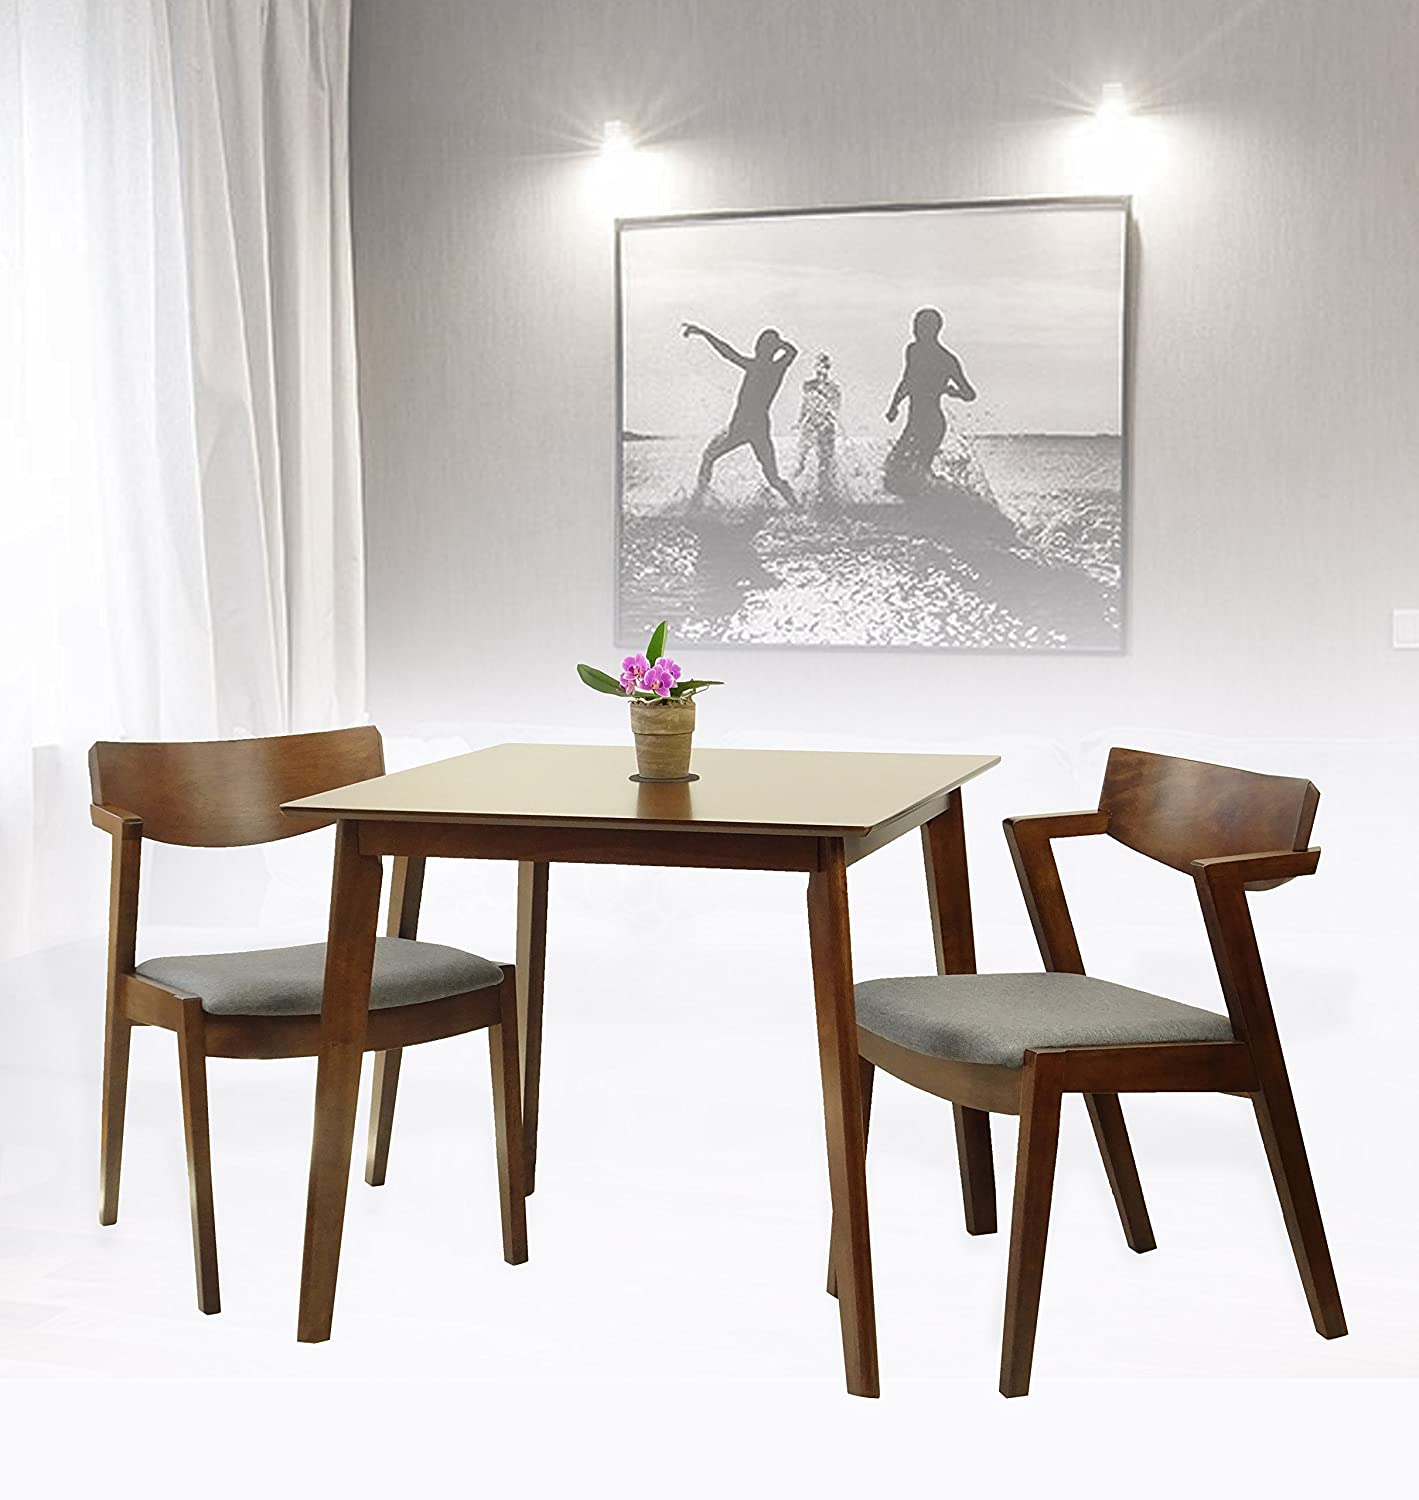 Rattan Wicker Furniture Set of 3 Dining Kitchen Square Table and 2 Tracy Armchairs Solid Wood w/Padded Seat Medium Brown Finish